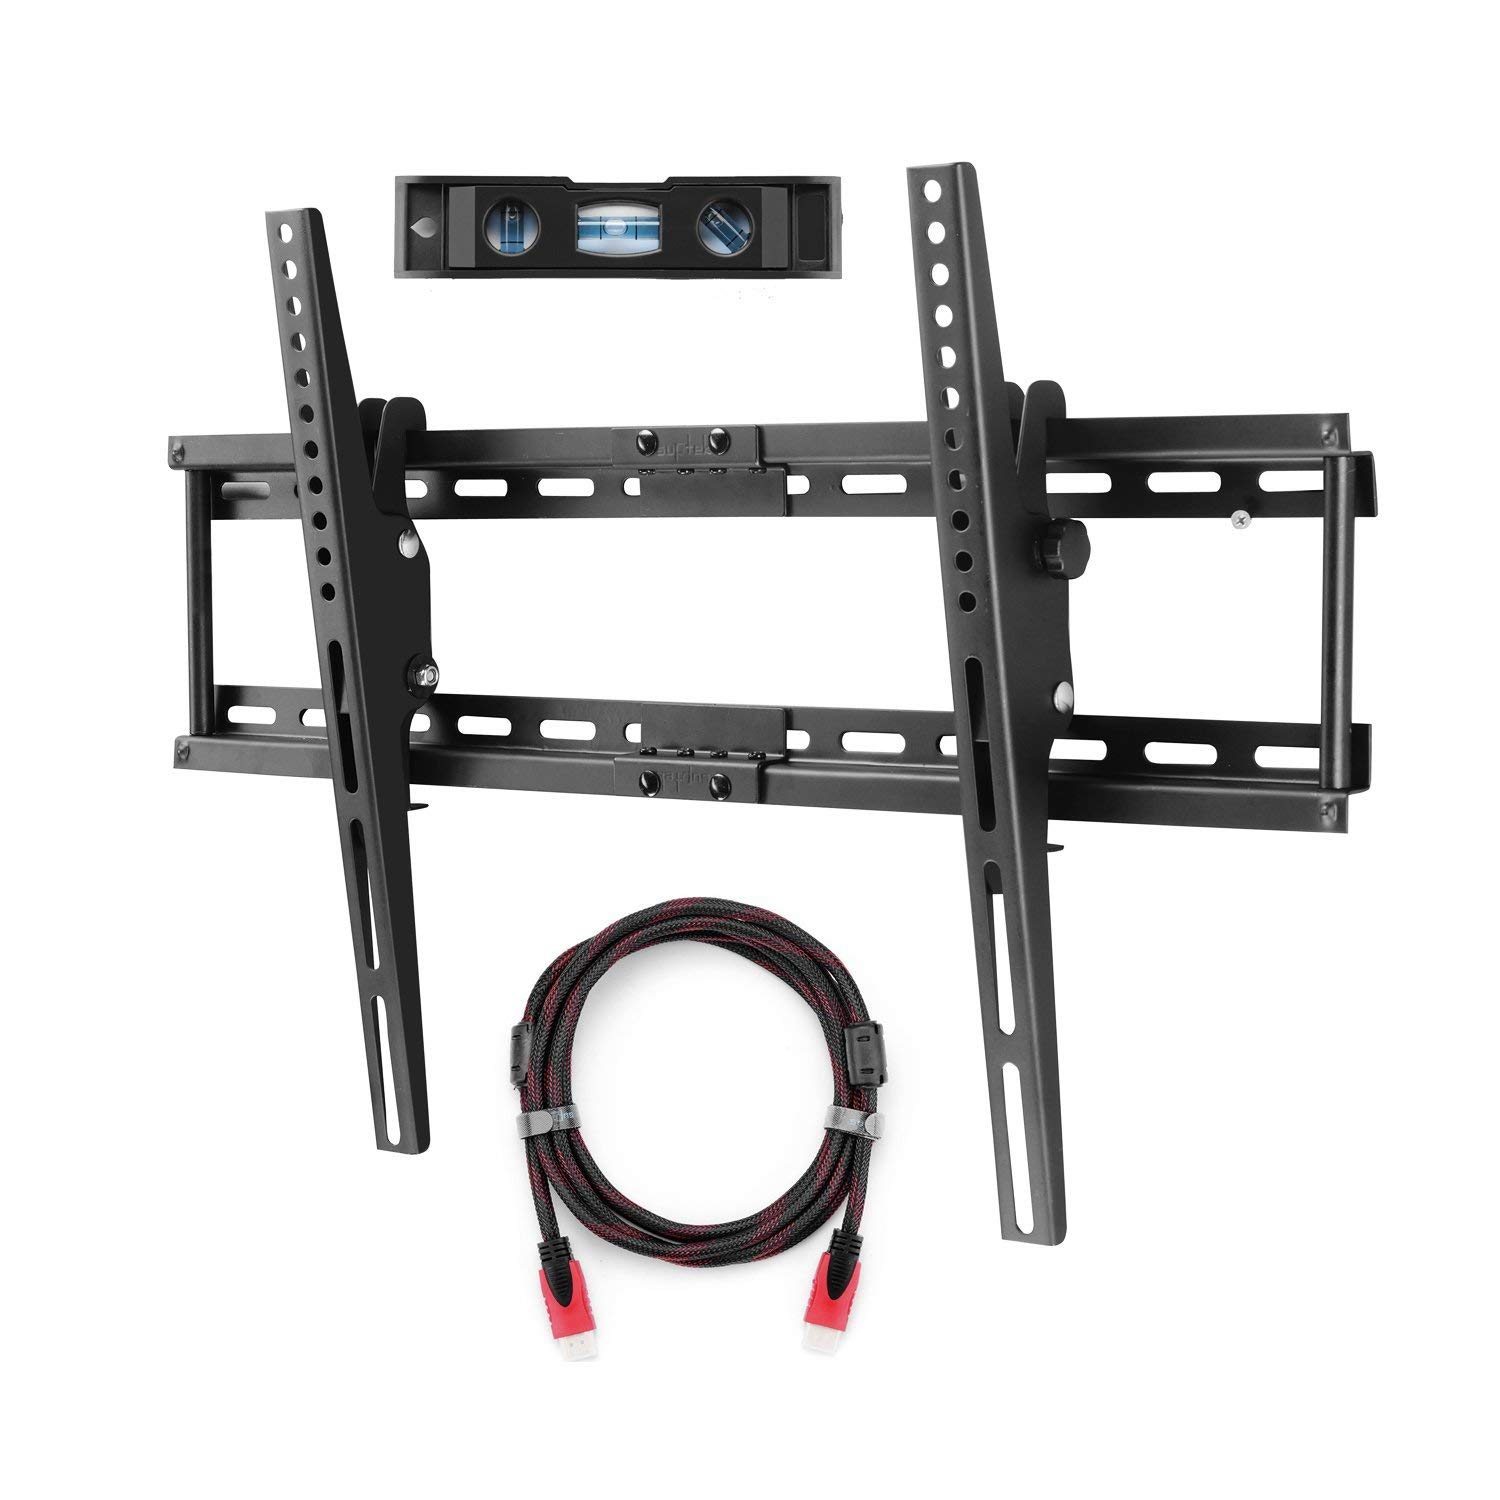 Suptek Tilt TV Wall Mount Bracket for 32-65 inch LED LCD and Plasma TV, Mount with Max 600x400mm VESA and 165lbs Loading Capacity, Fits Studs 24 inch Apart, Low Profile (MT5074)